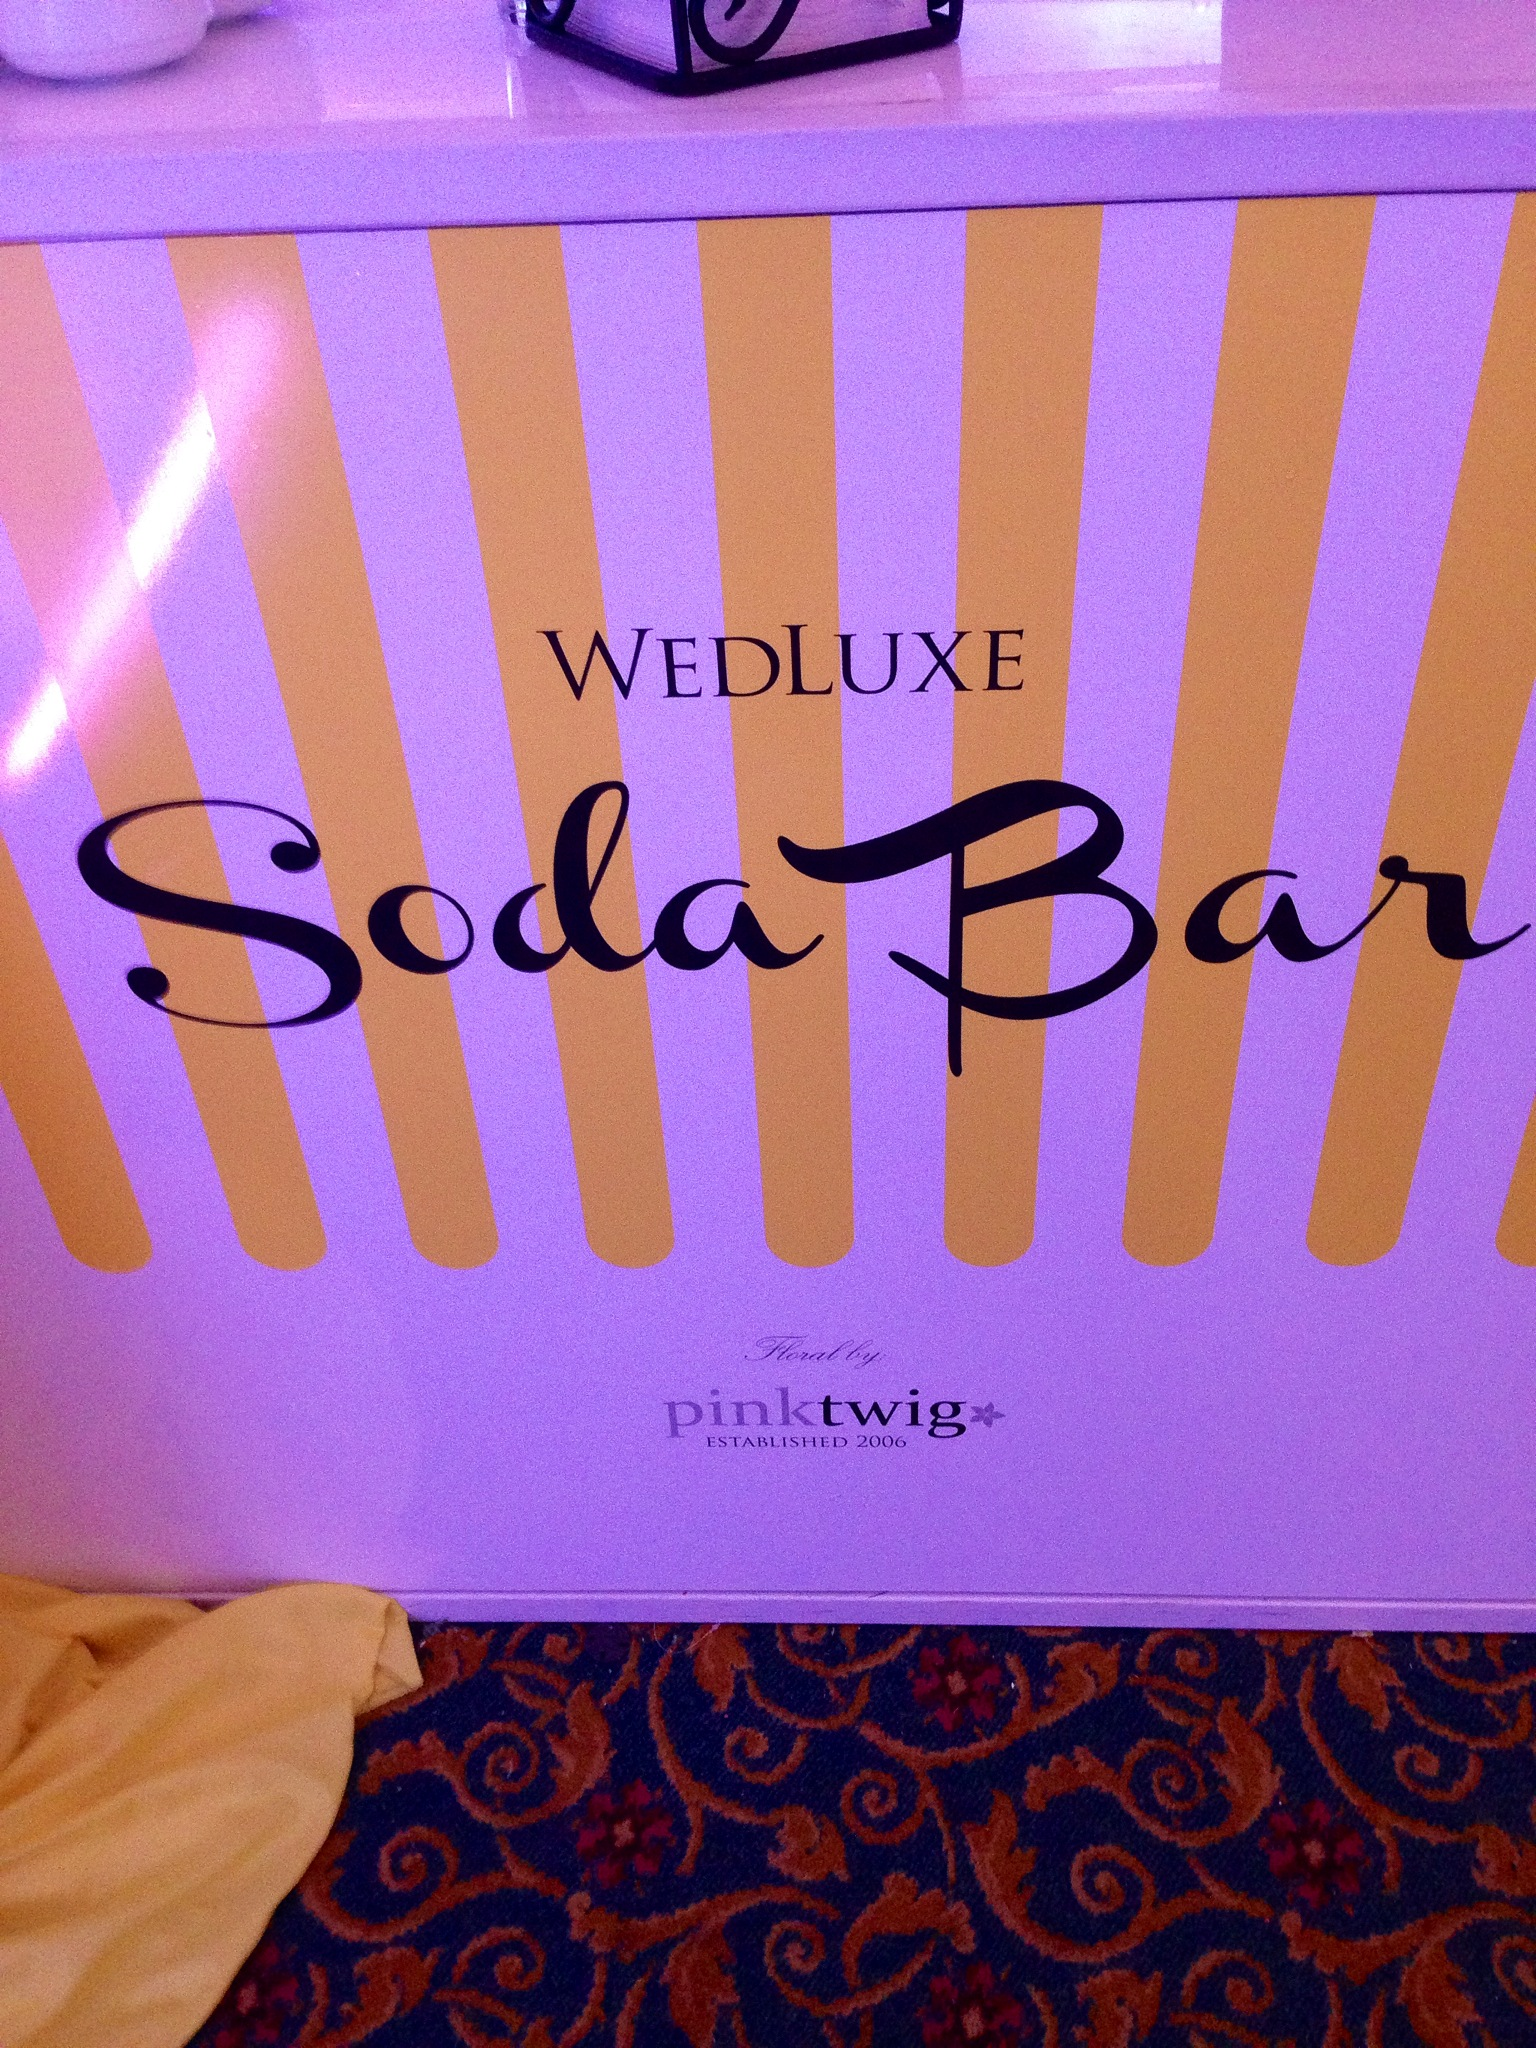 sodabar-weddings-wedluxeshow-torontoweddingplanner